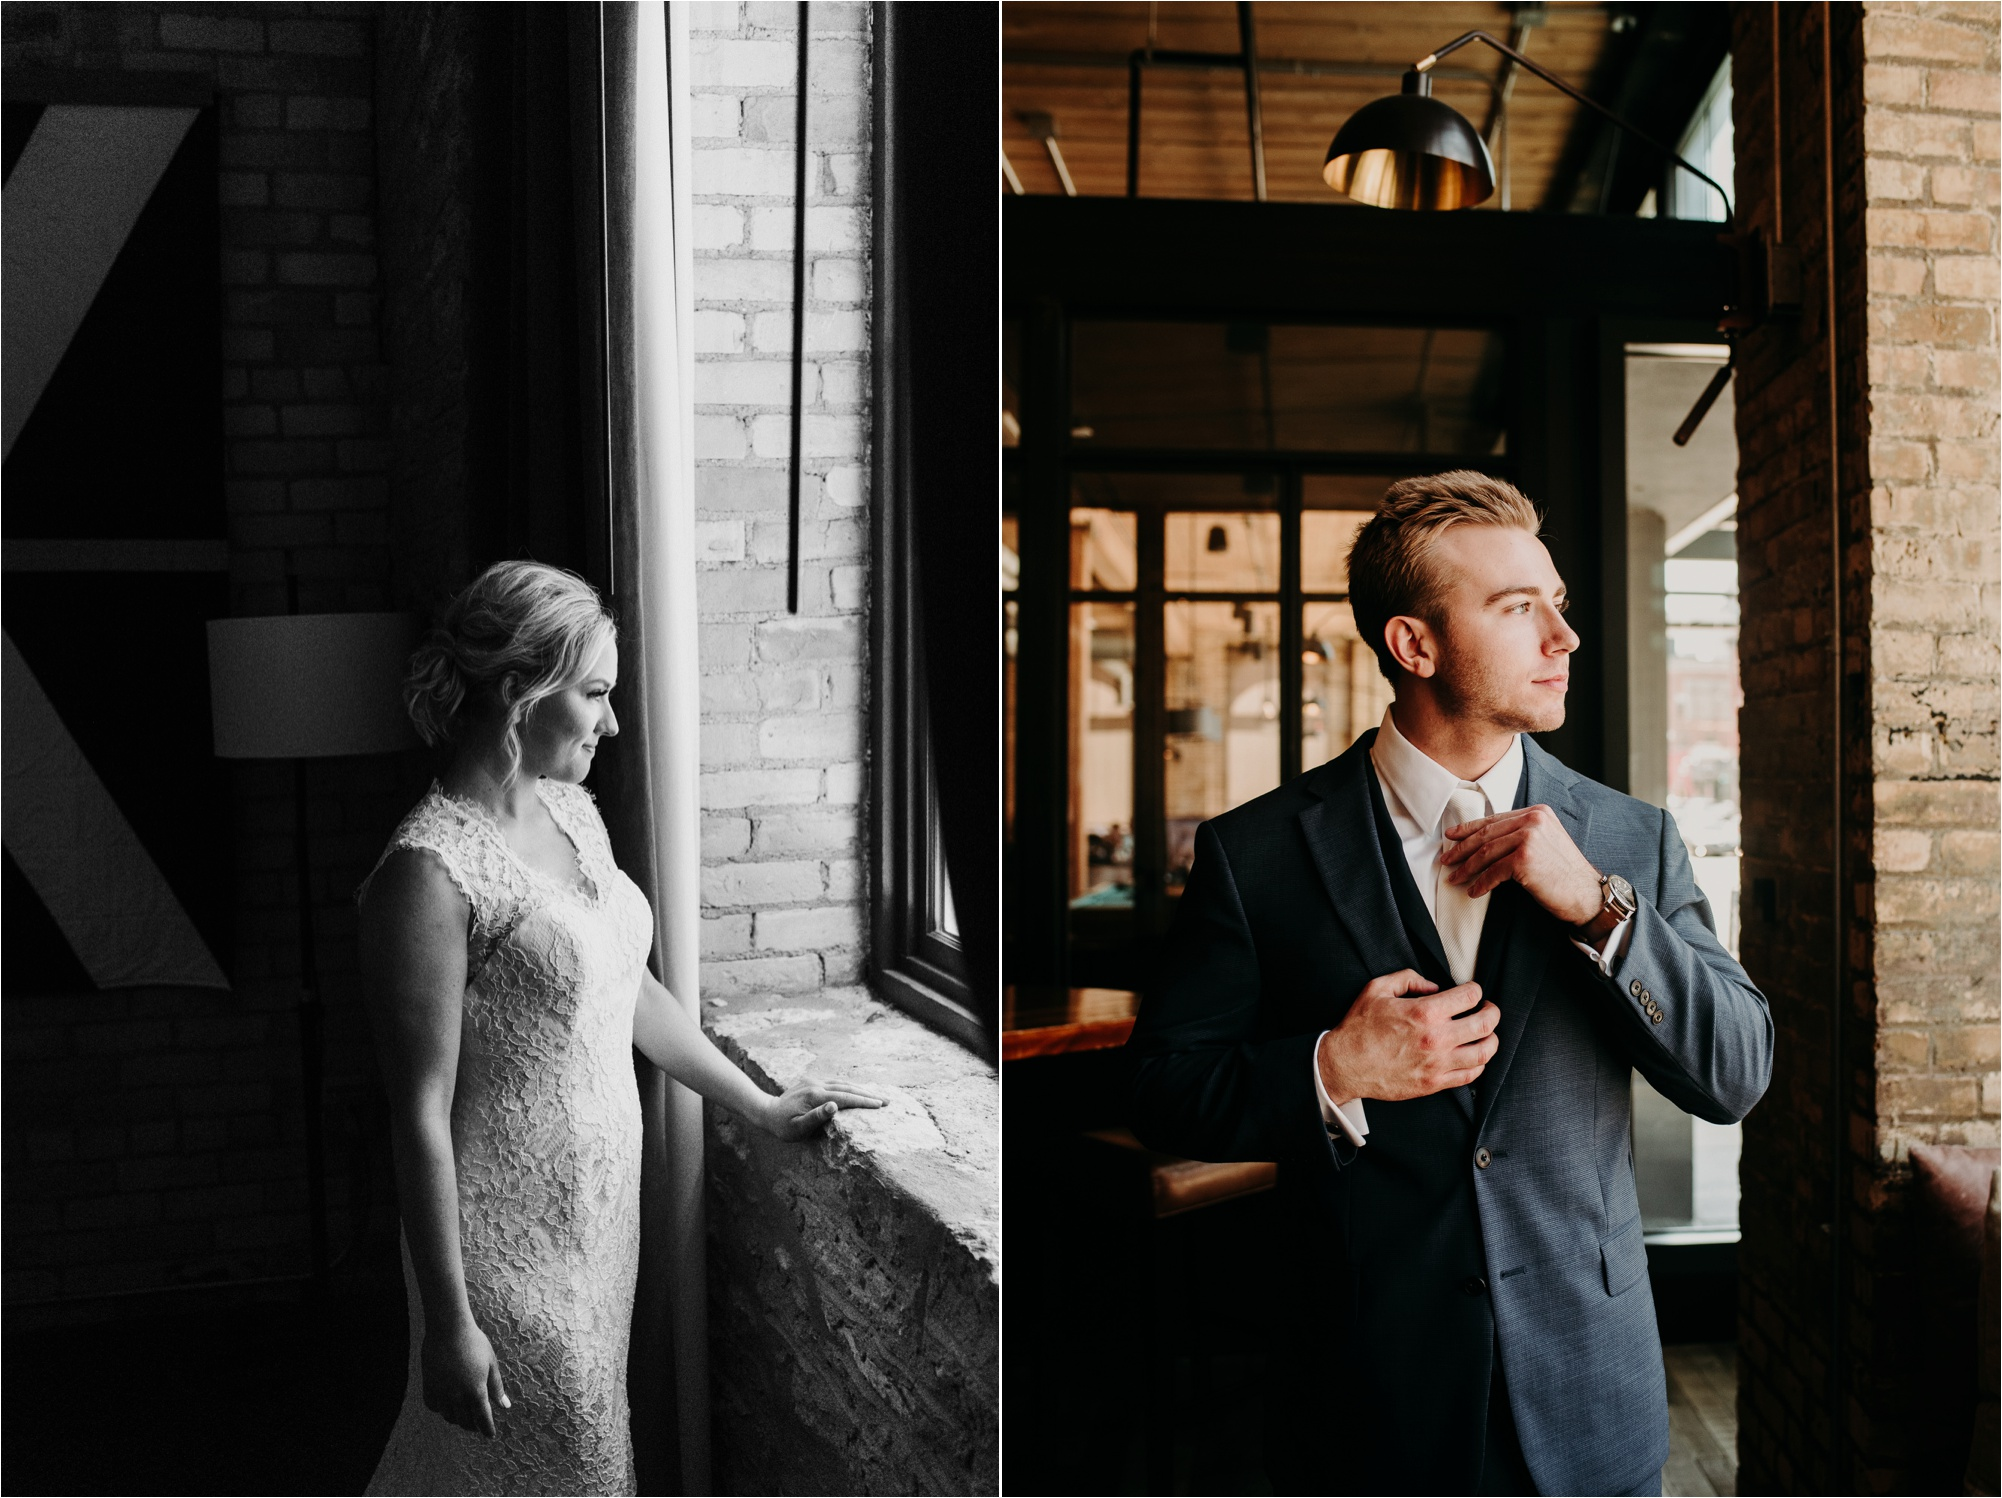 hewing hotel north loop minneapolis minnesota wedding photographer mn getting ready photography